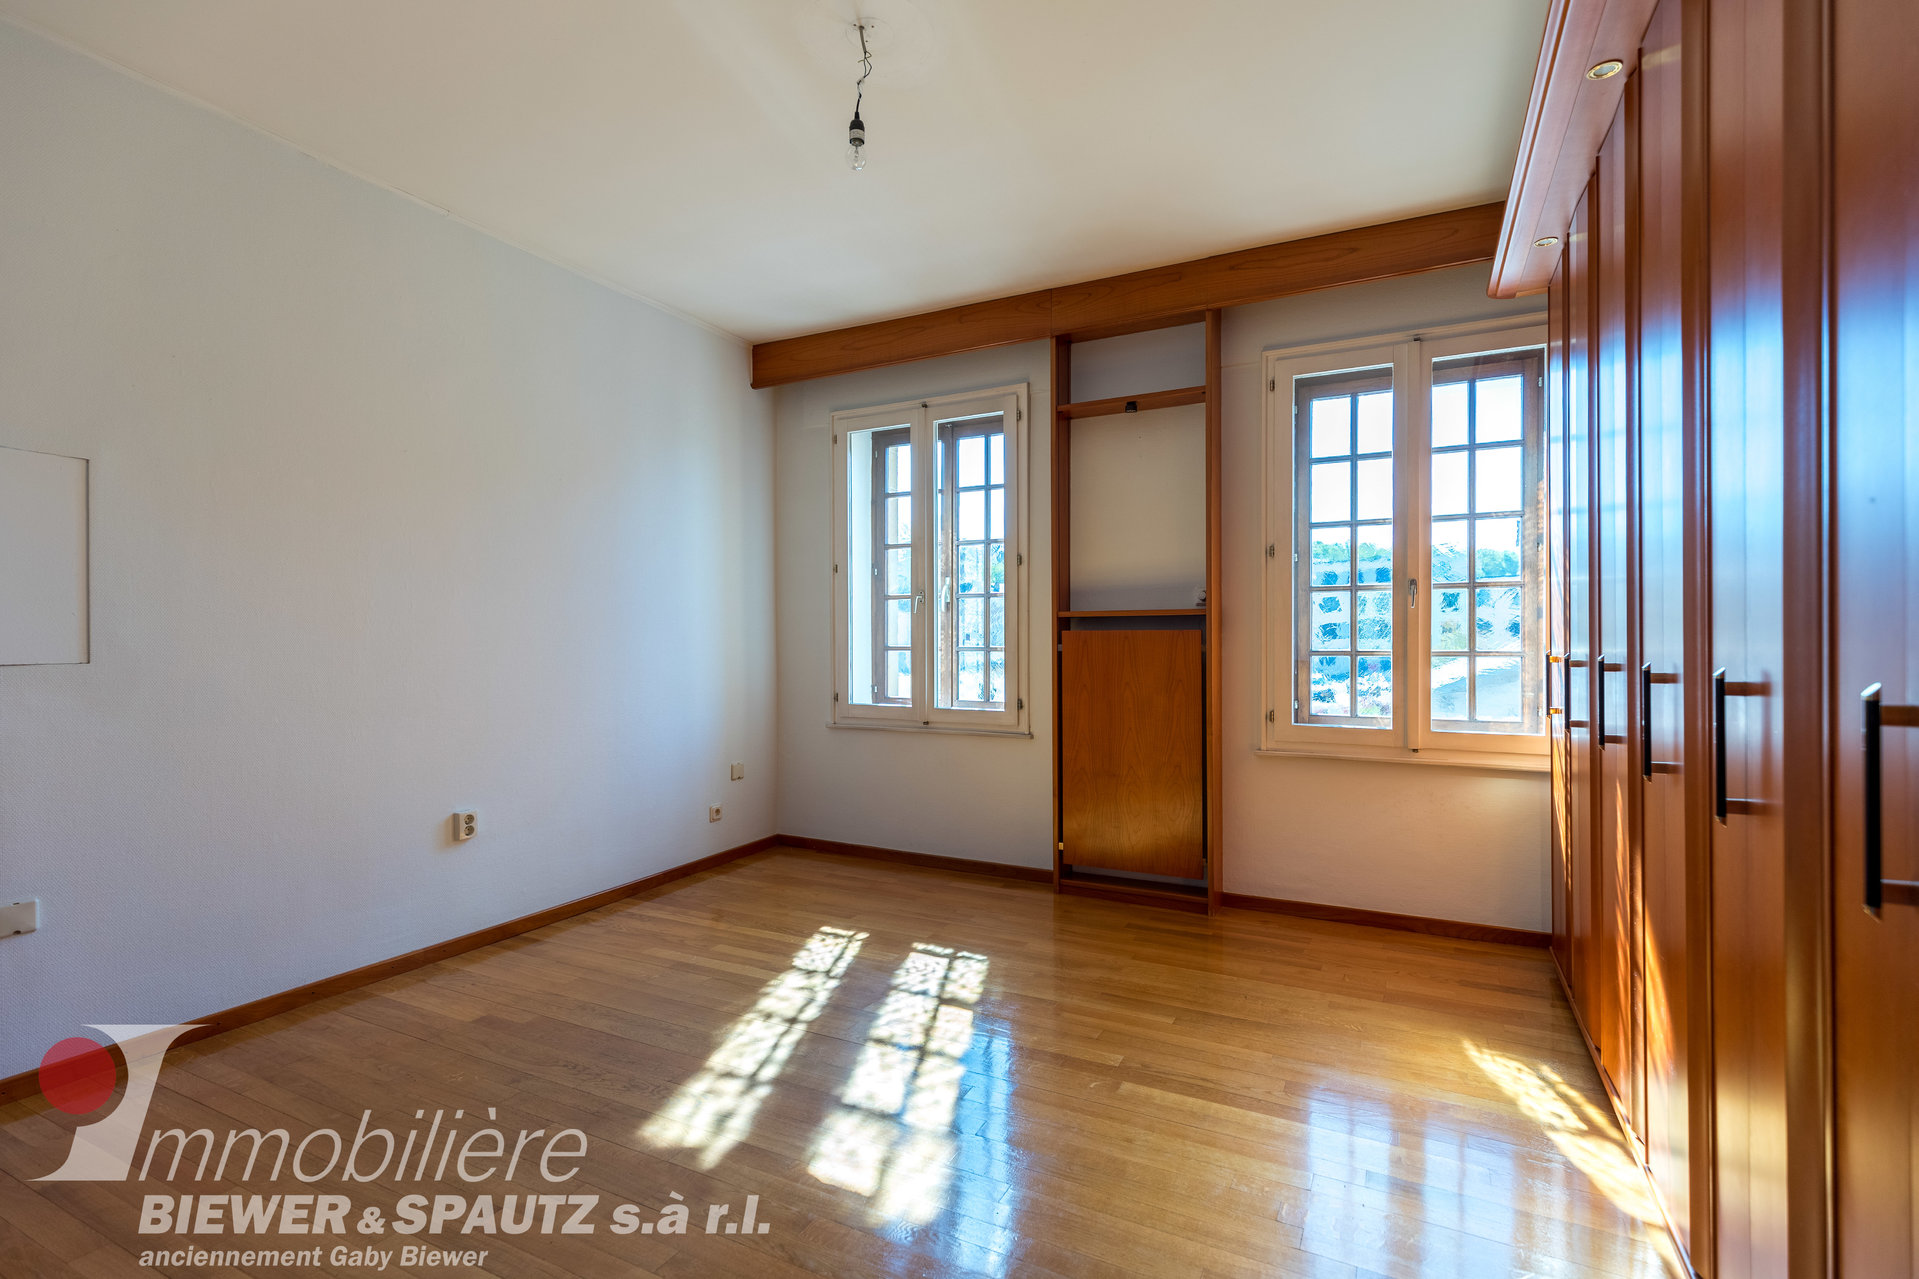 FOR RENT - House with 3 bedrooms in Junglinster